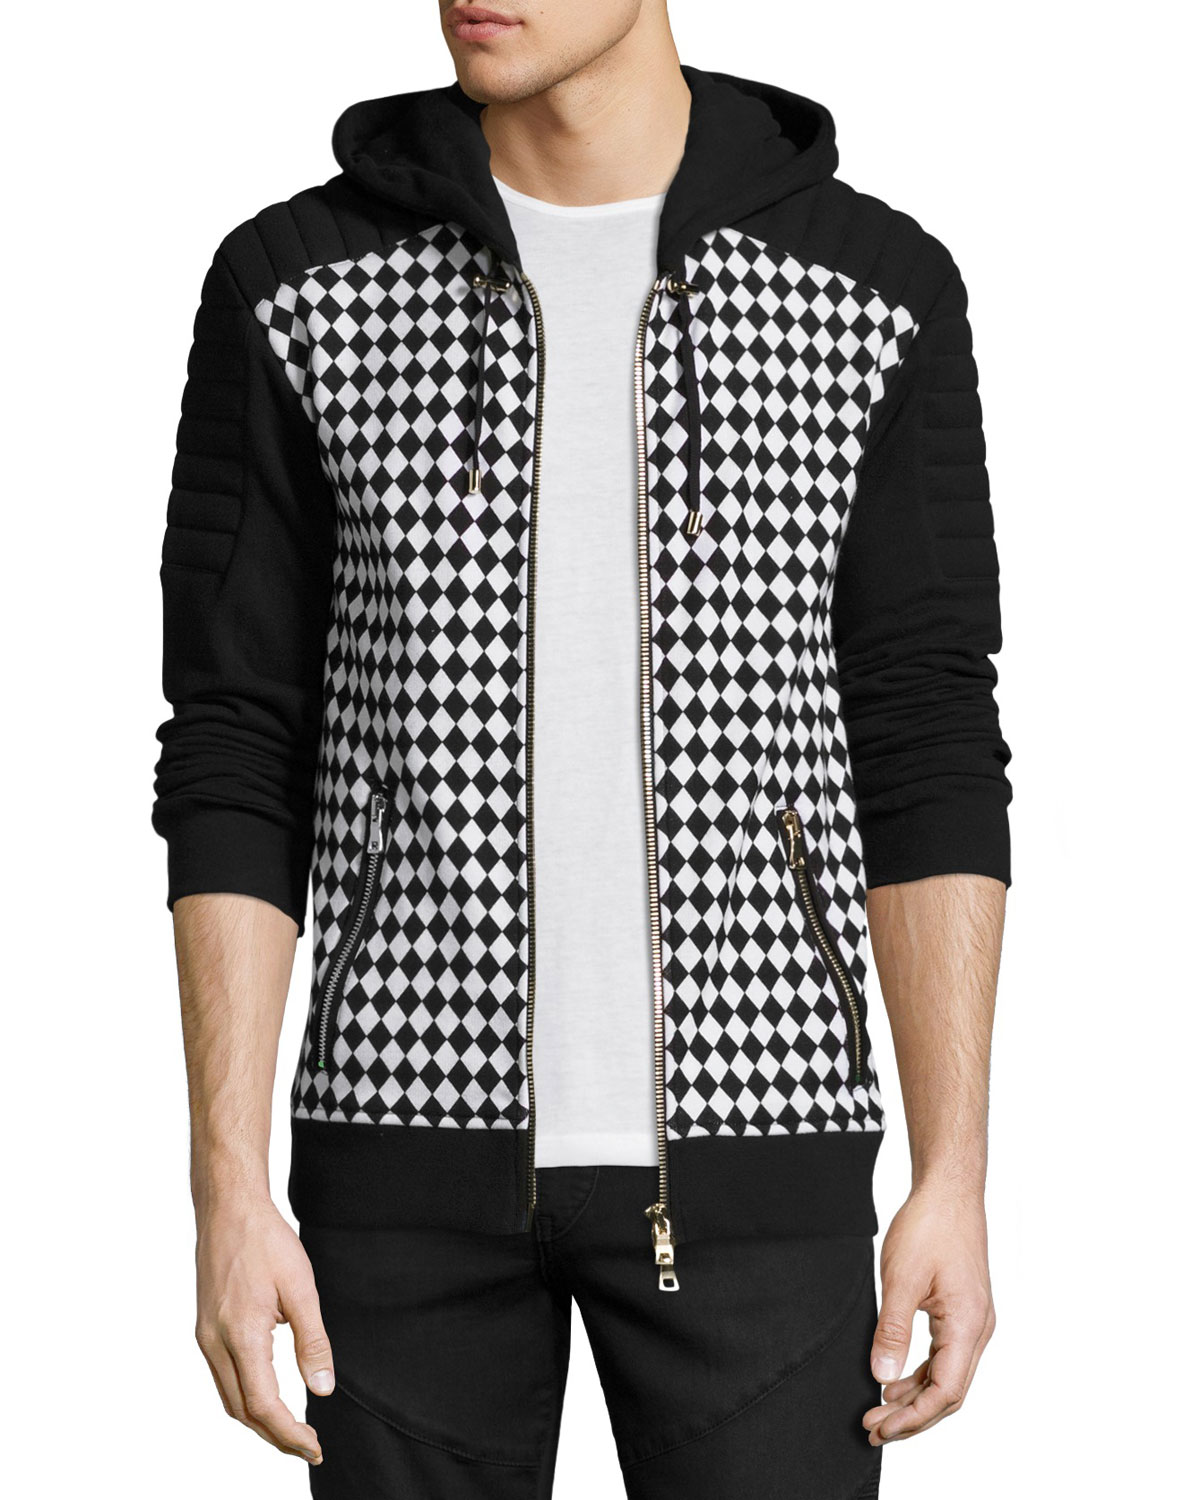 Checker-Print Zip-Front Sweatshirt, Black/White